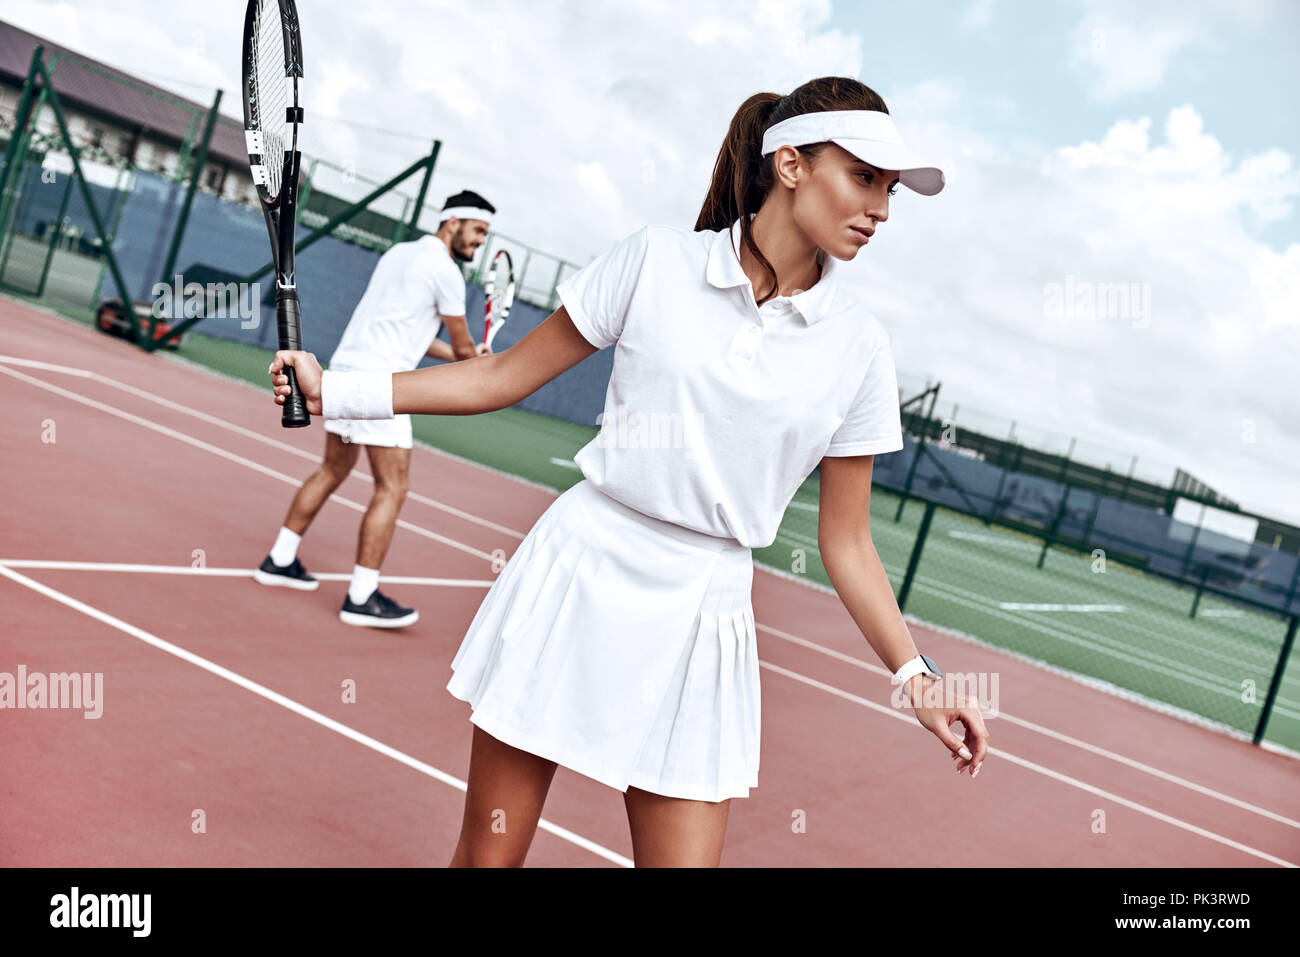 Tennis Outfit High Resolution Stock Photography And Images Alamy